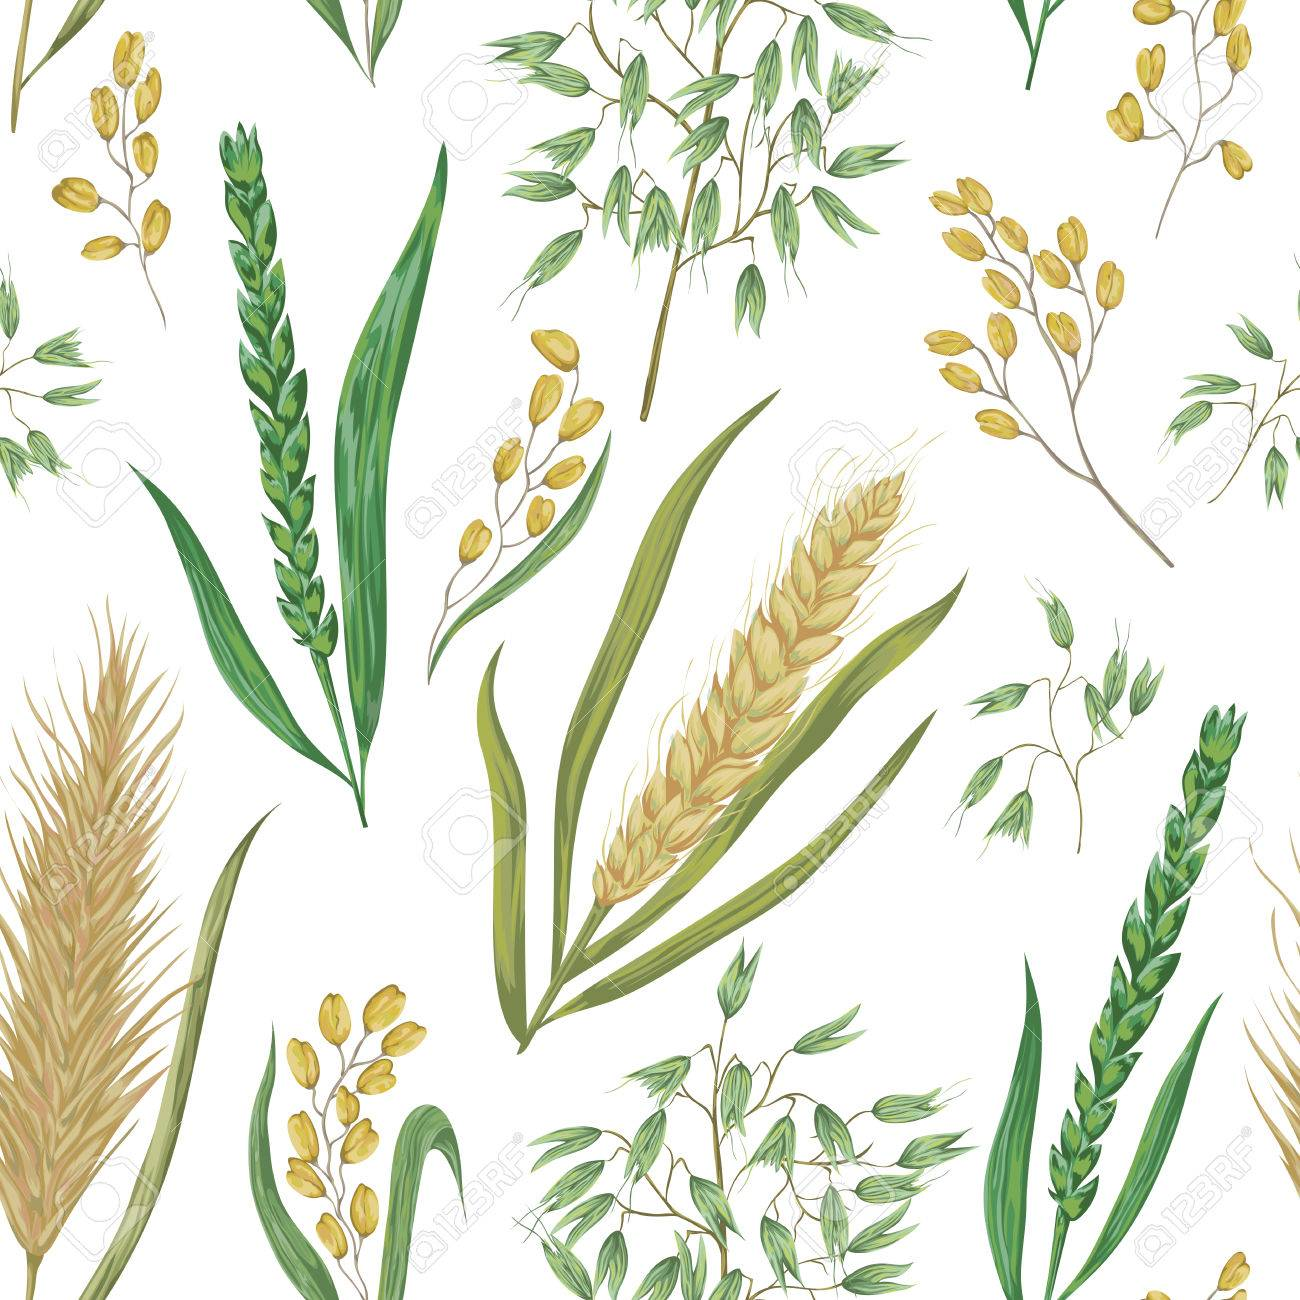 Seamless pattern with cereals. Barley, wheat, rye, rice and oat. Collection decorative floral design elements. Isolated elements. Vintage vector illustration in watercolor style. - 68605834